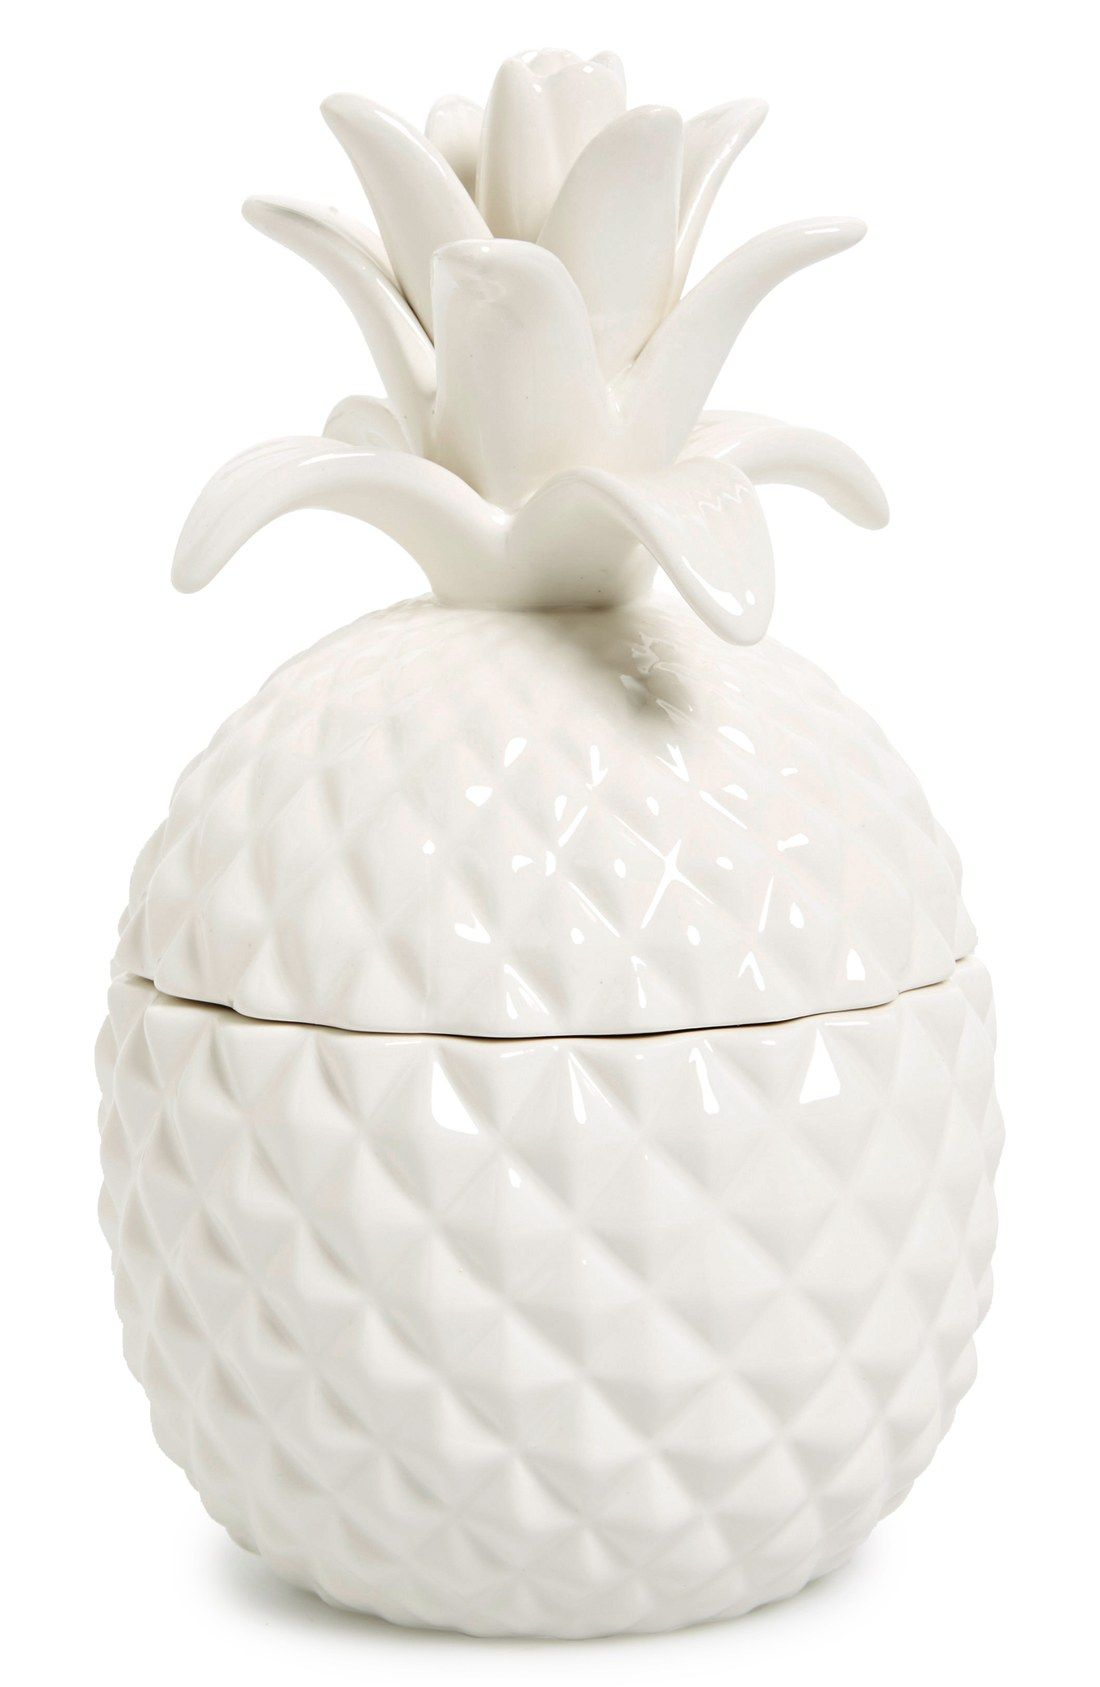 Ceramic Cookie Jar Sets This Ceramic Pineapple Jar Is Perfect For Storing Cookies